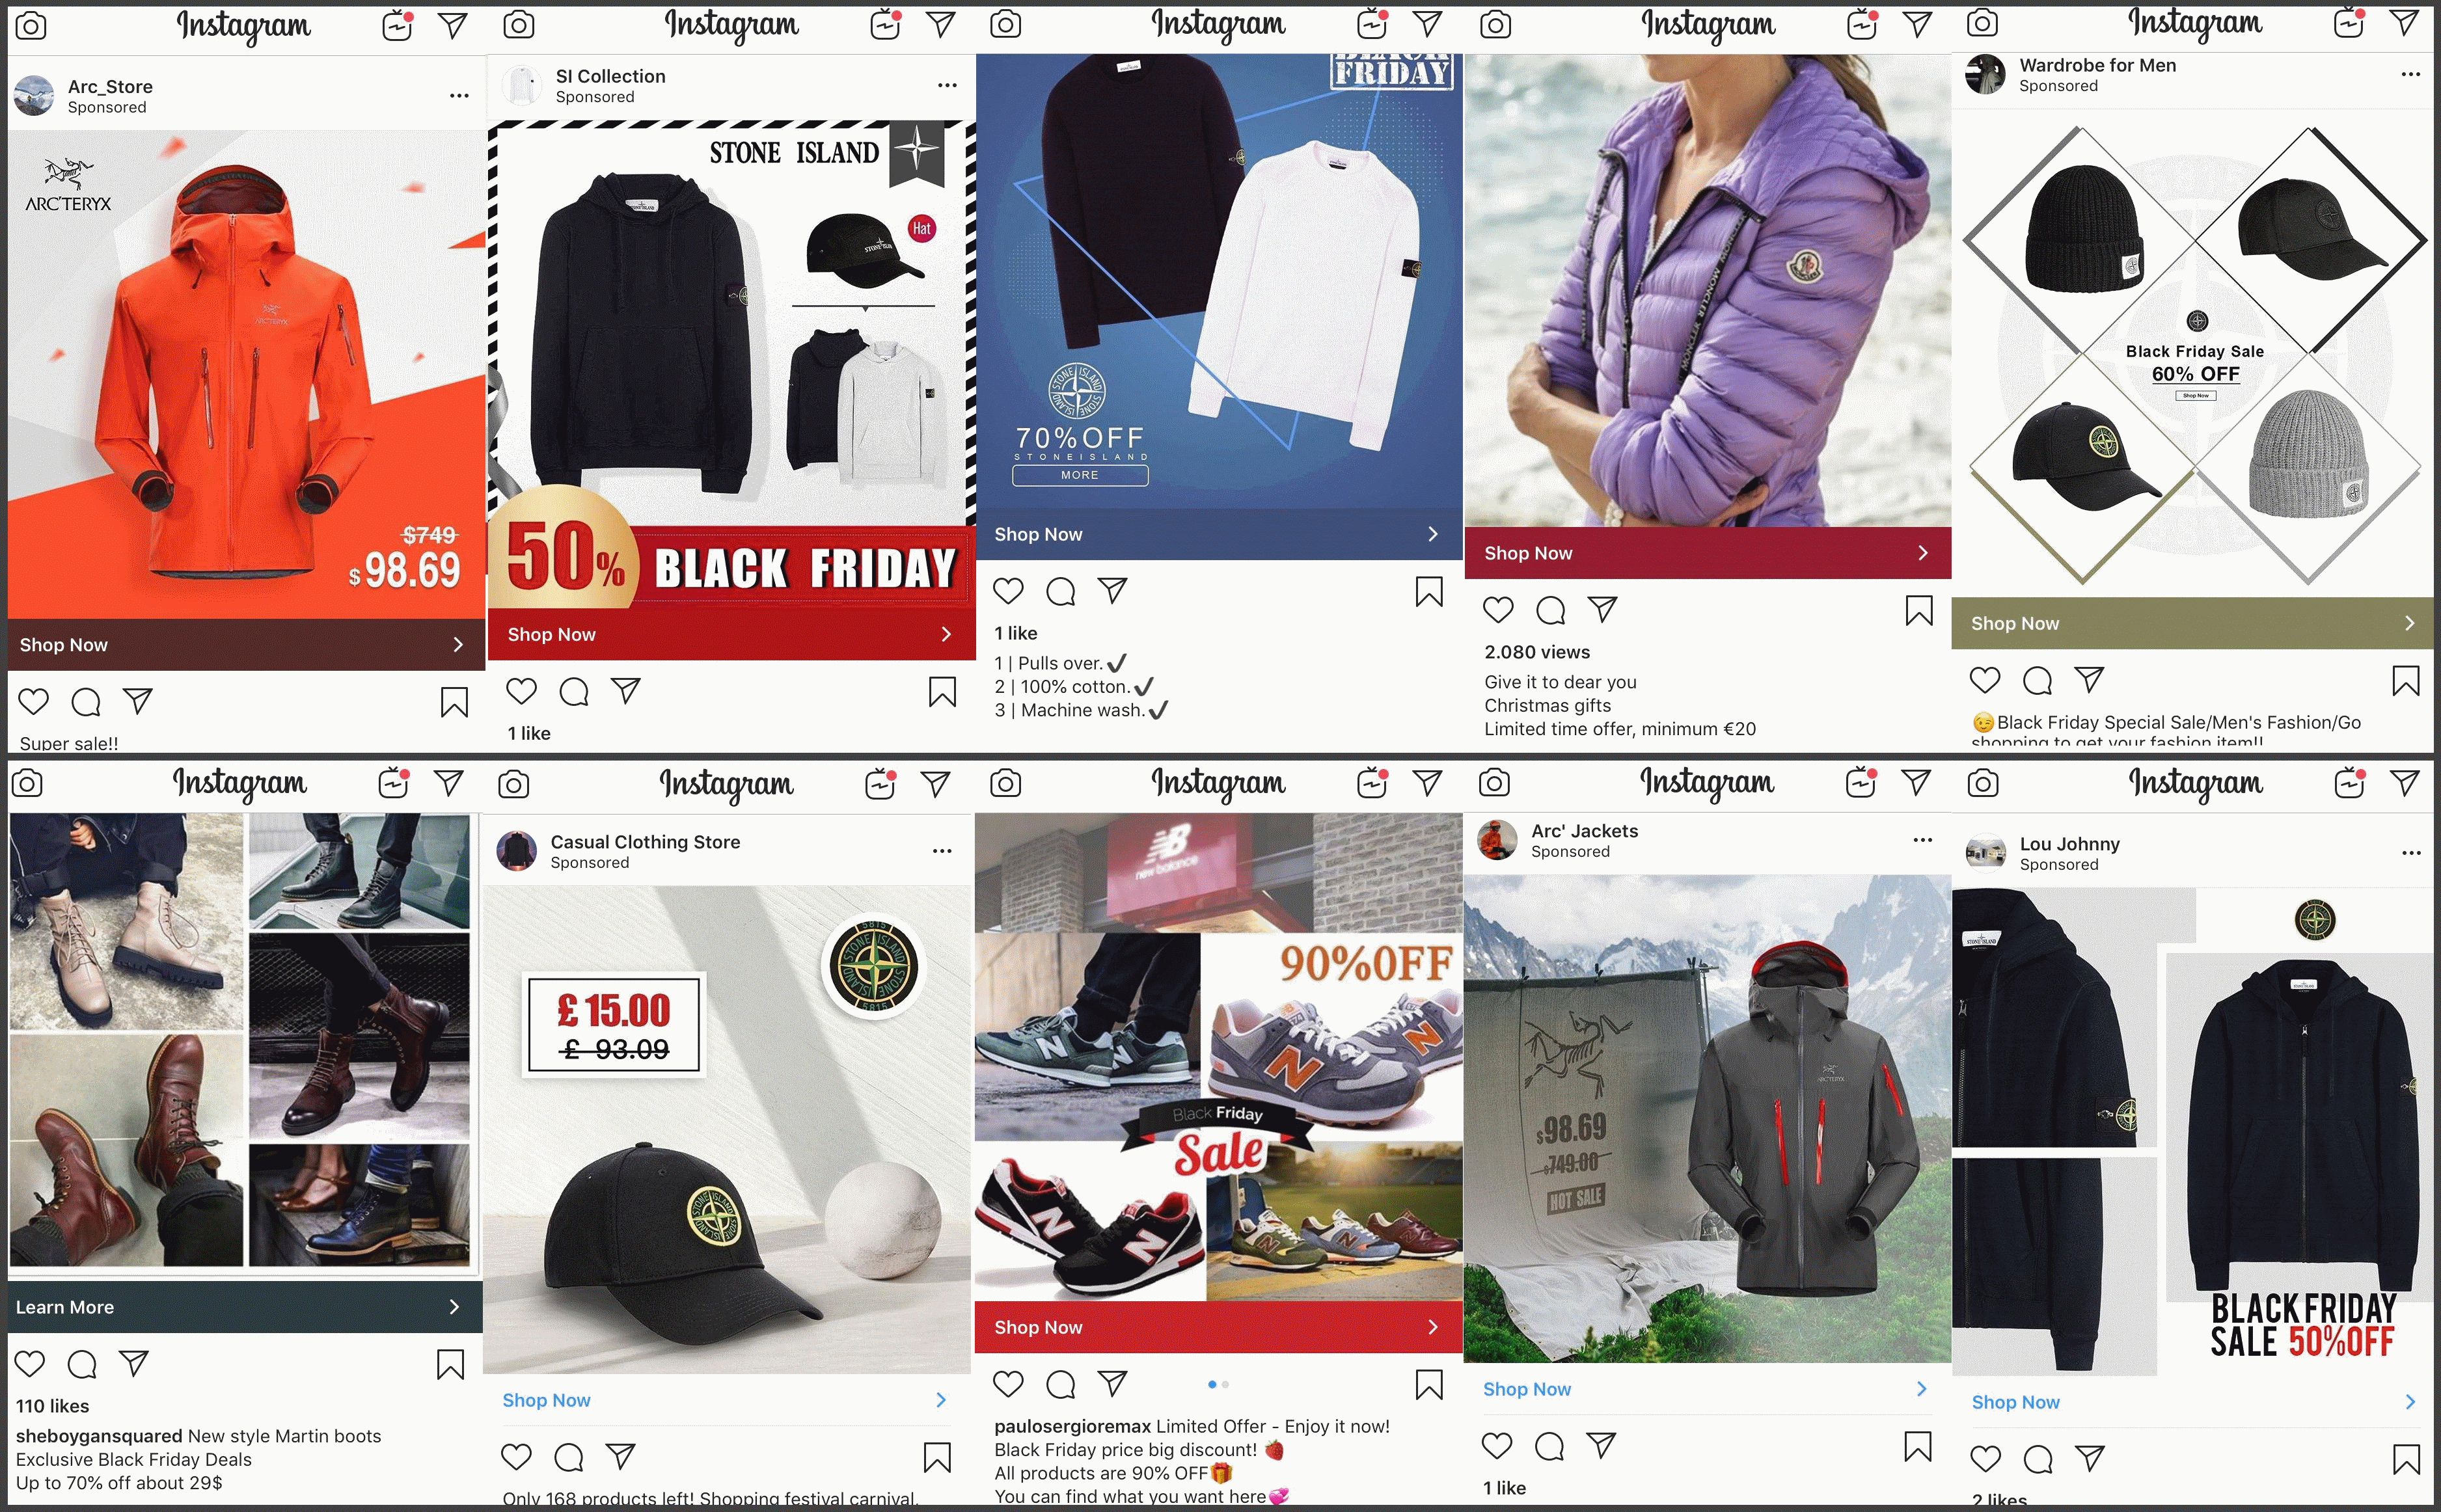 A variety of Instagram ads identified in the past few days